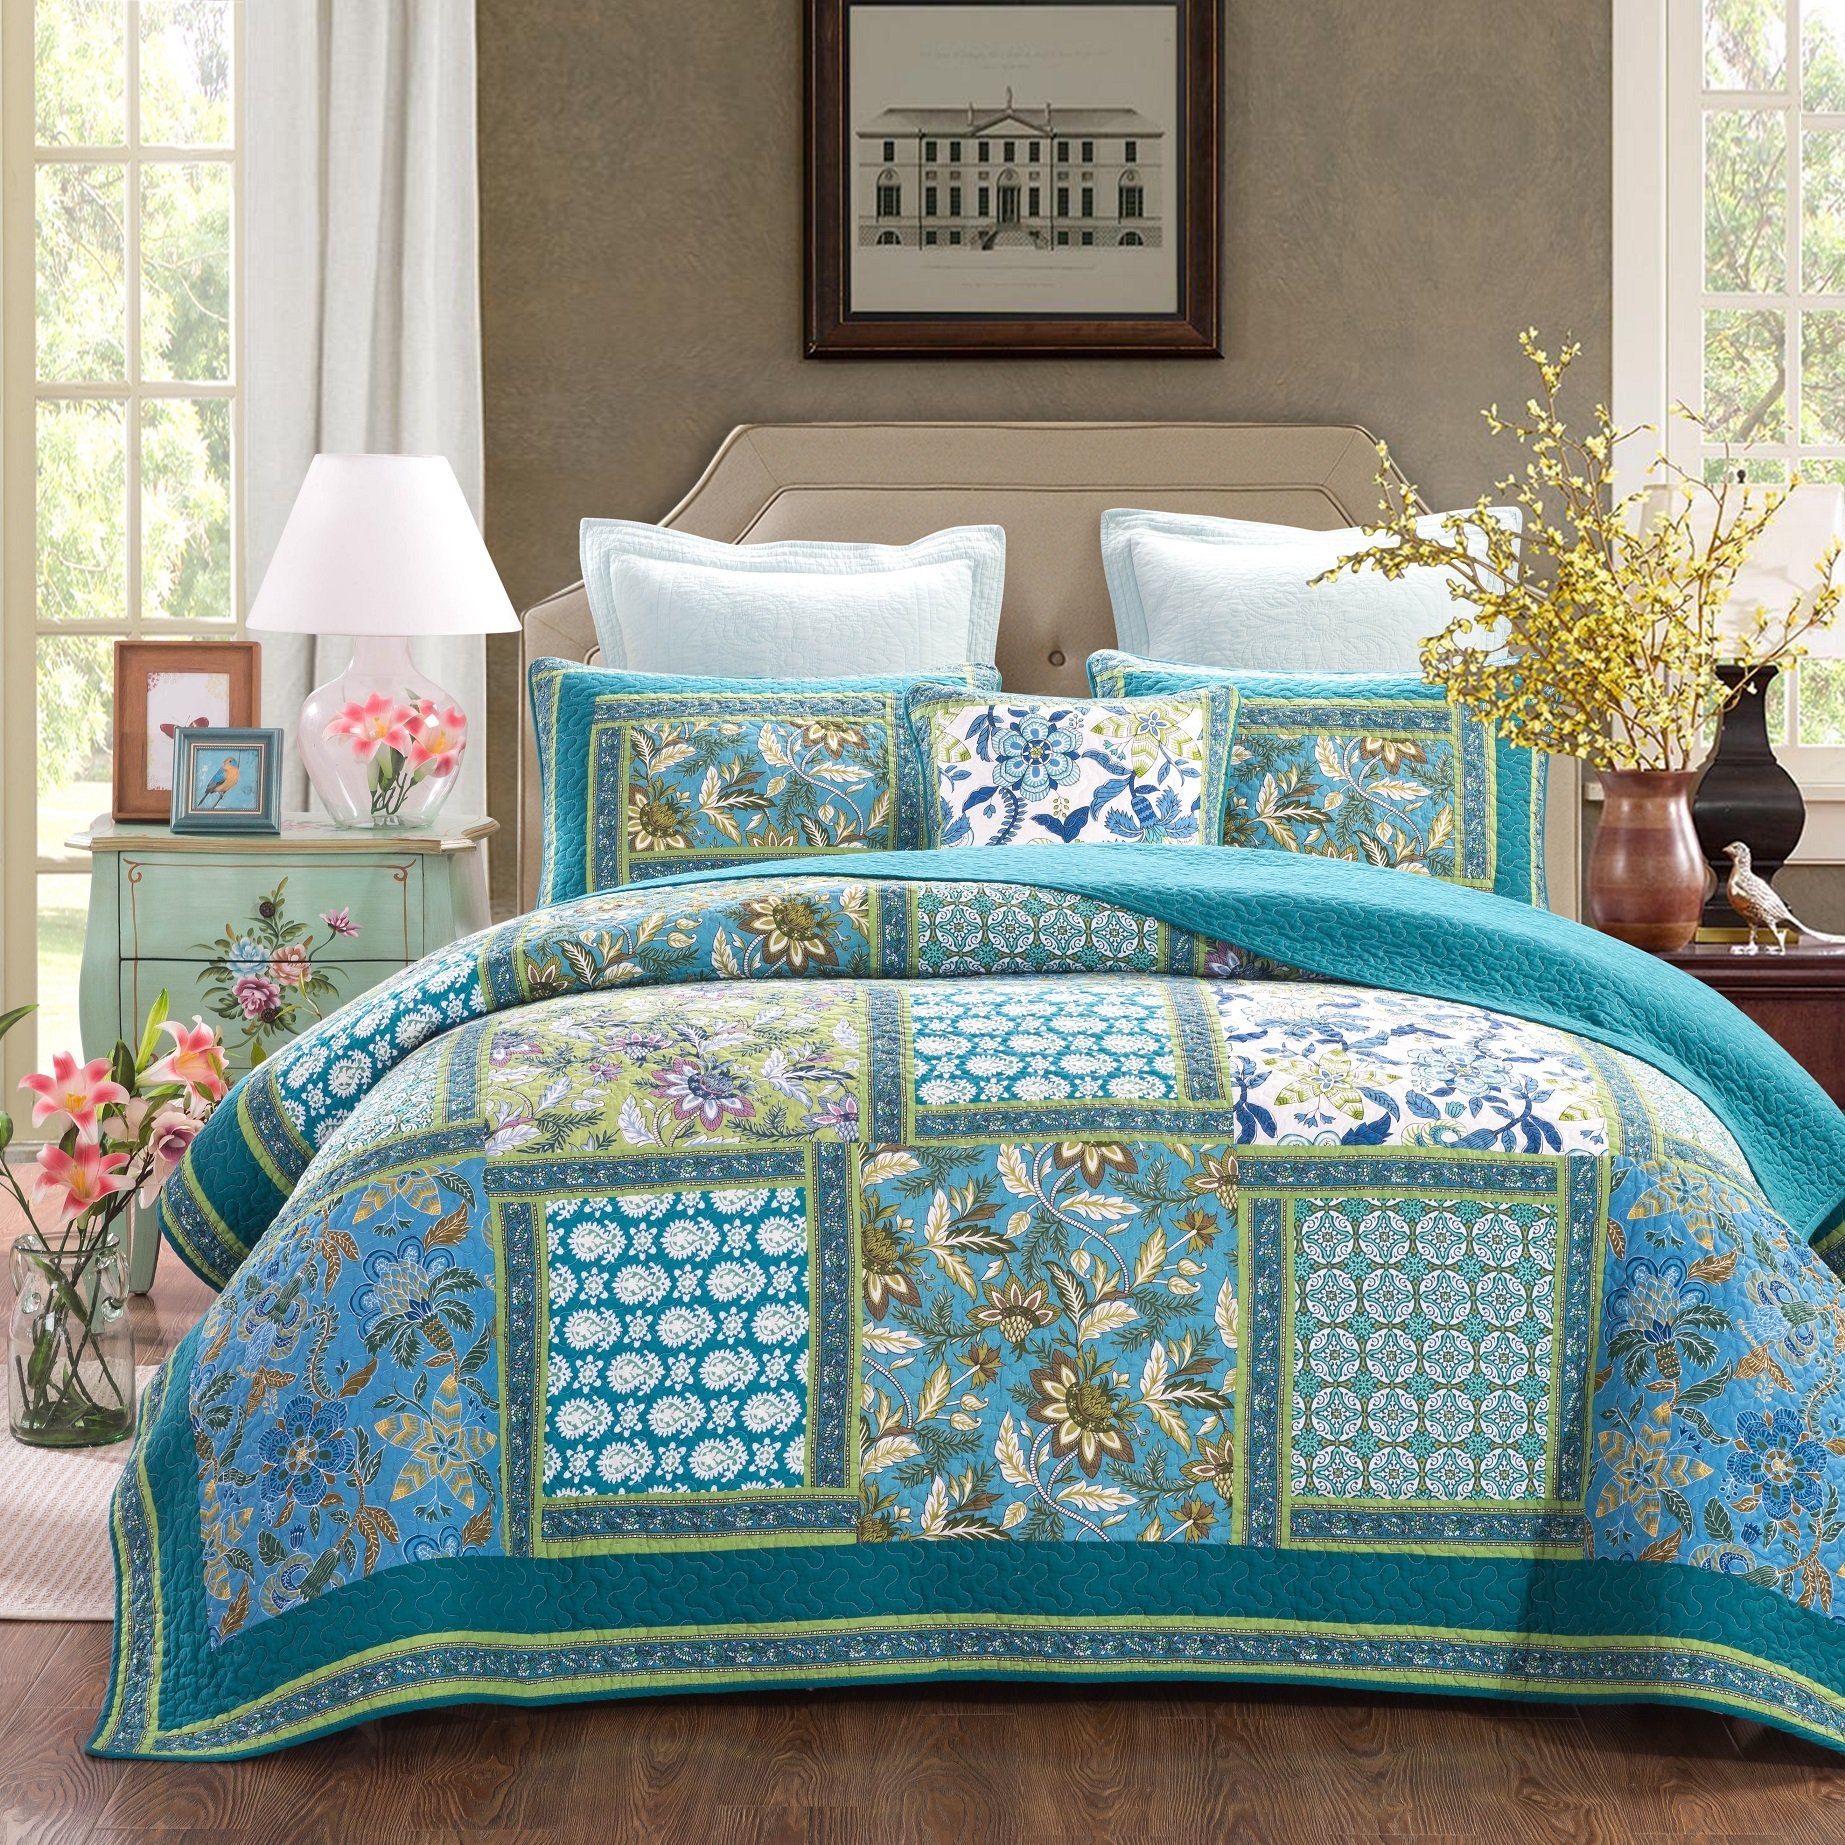 DaDa Bedding Mediterranean Fountain Bohemian Reversible Cotton Real Patchwork Quilted Coverlet Bedspread Set - Bright Vibrant Floral Paisley Colorful Turquoise Teal Blue Green Print - King - 3-Pieces